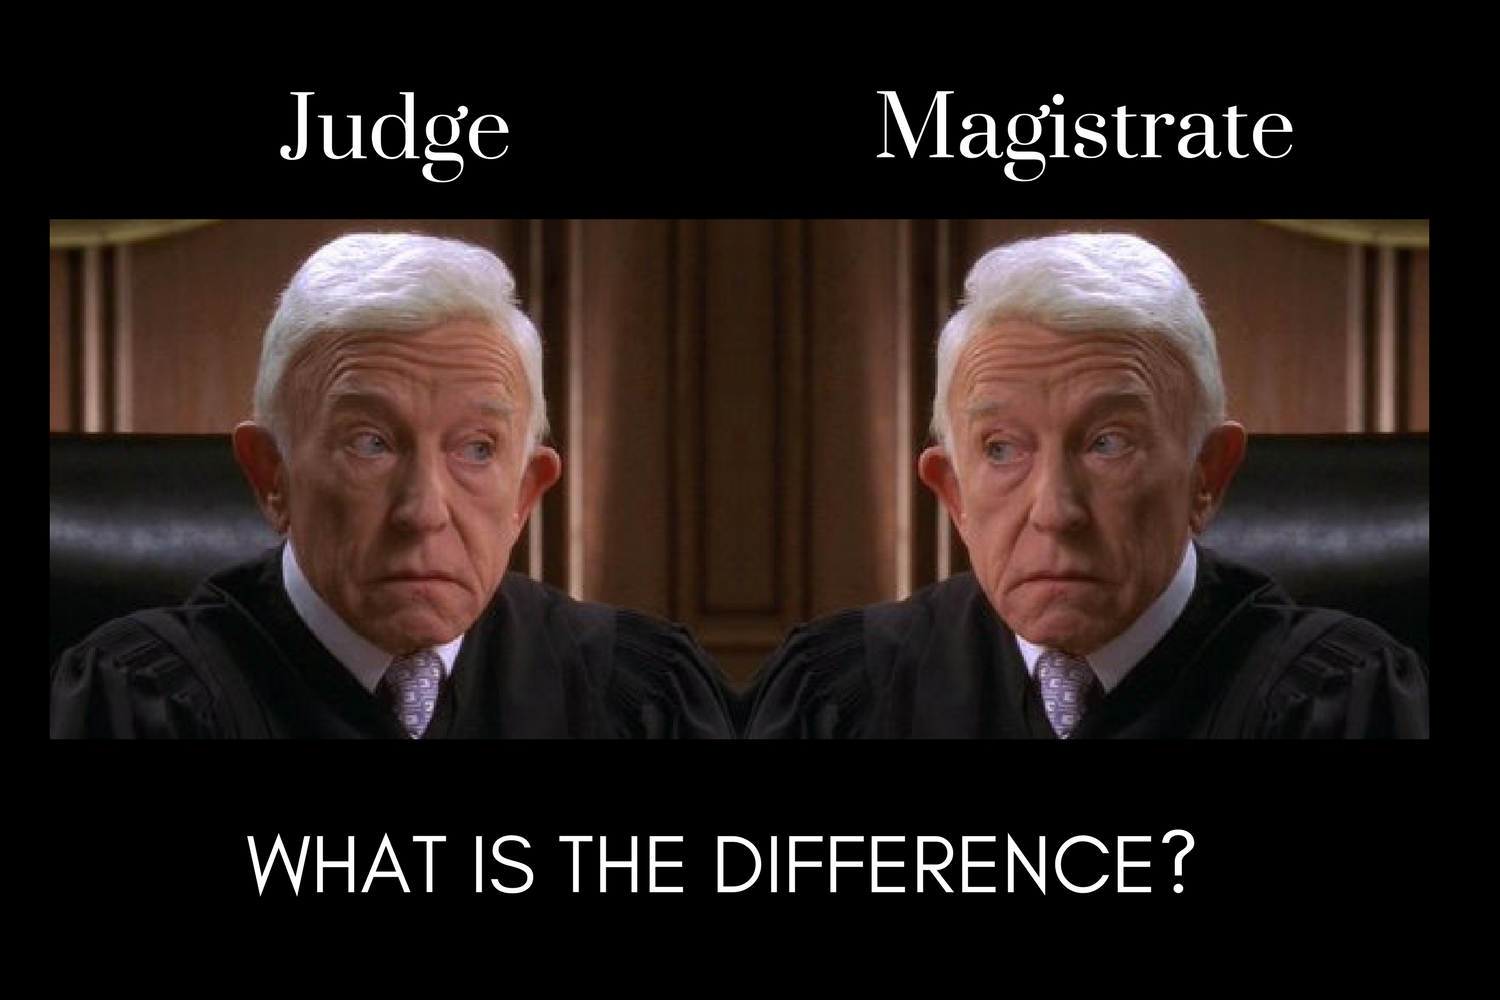 FAQ: What is the Difference Between a Judge and a Magistrate?